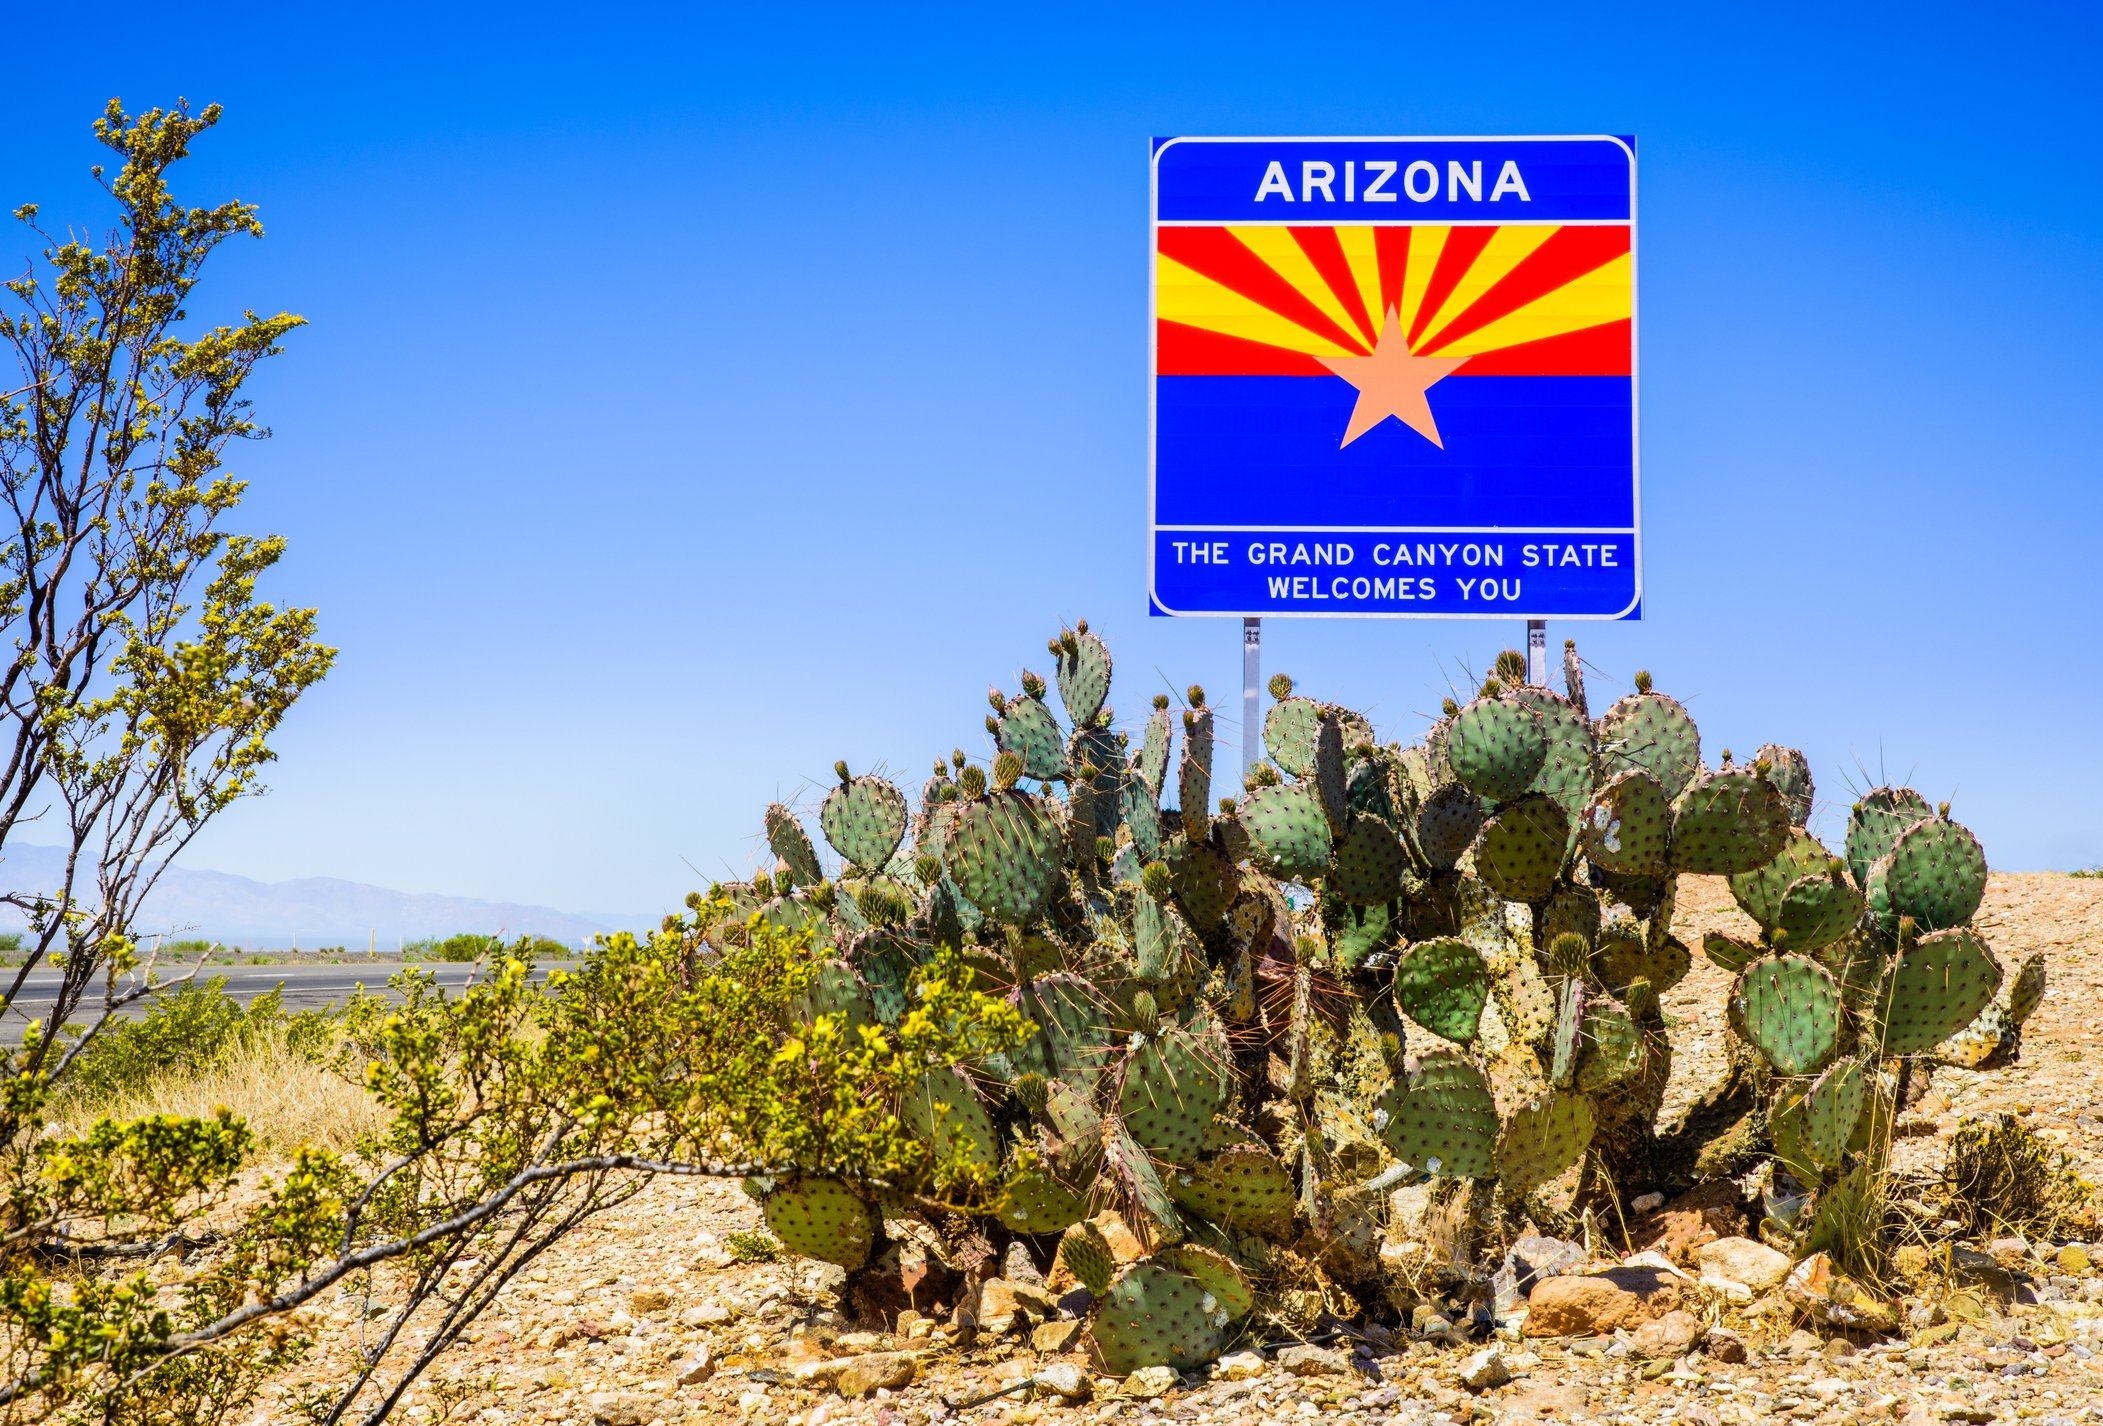 Slide 4 of 51: The Arizona sign is beautiful and bold, just like its most iconic landmark, the Grand Canyon. The Grand Canyon is just one of the national parks around the country that allow you to bring your dog, too.